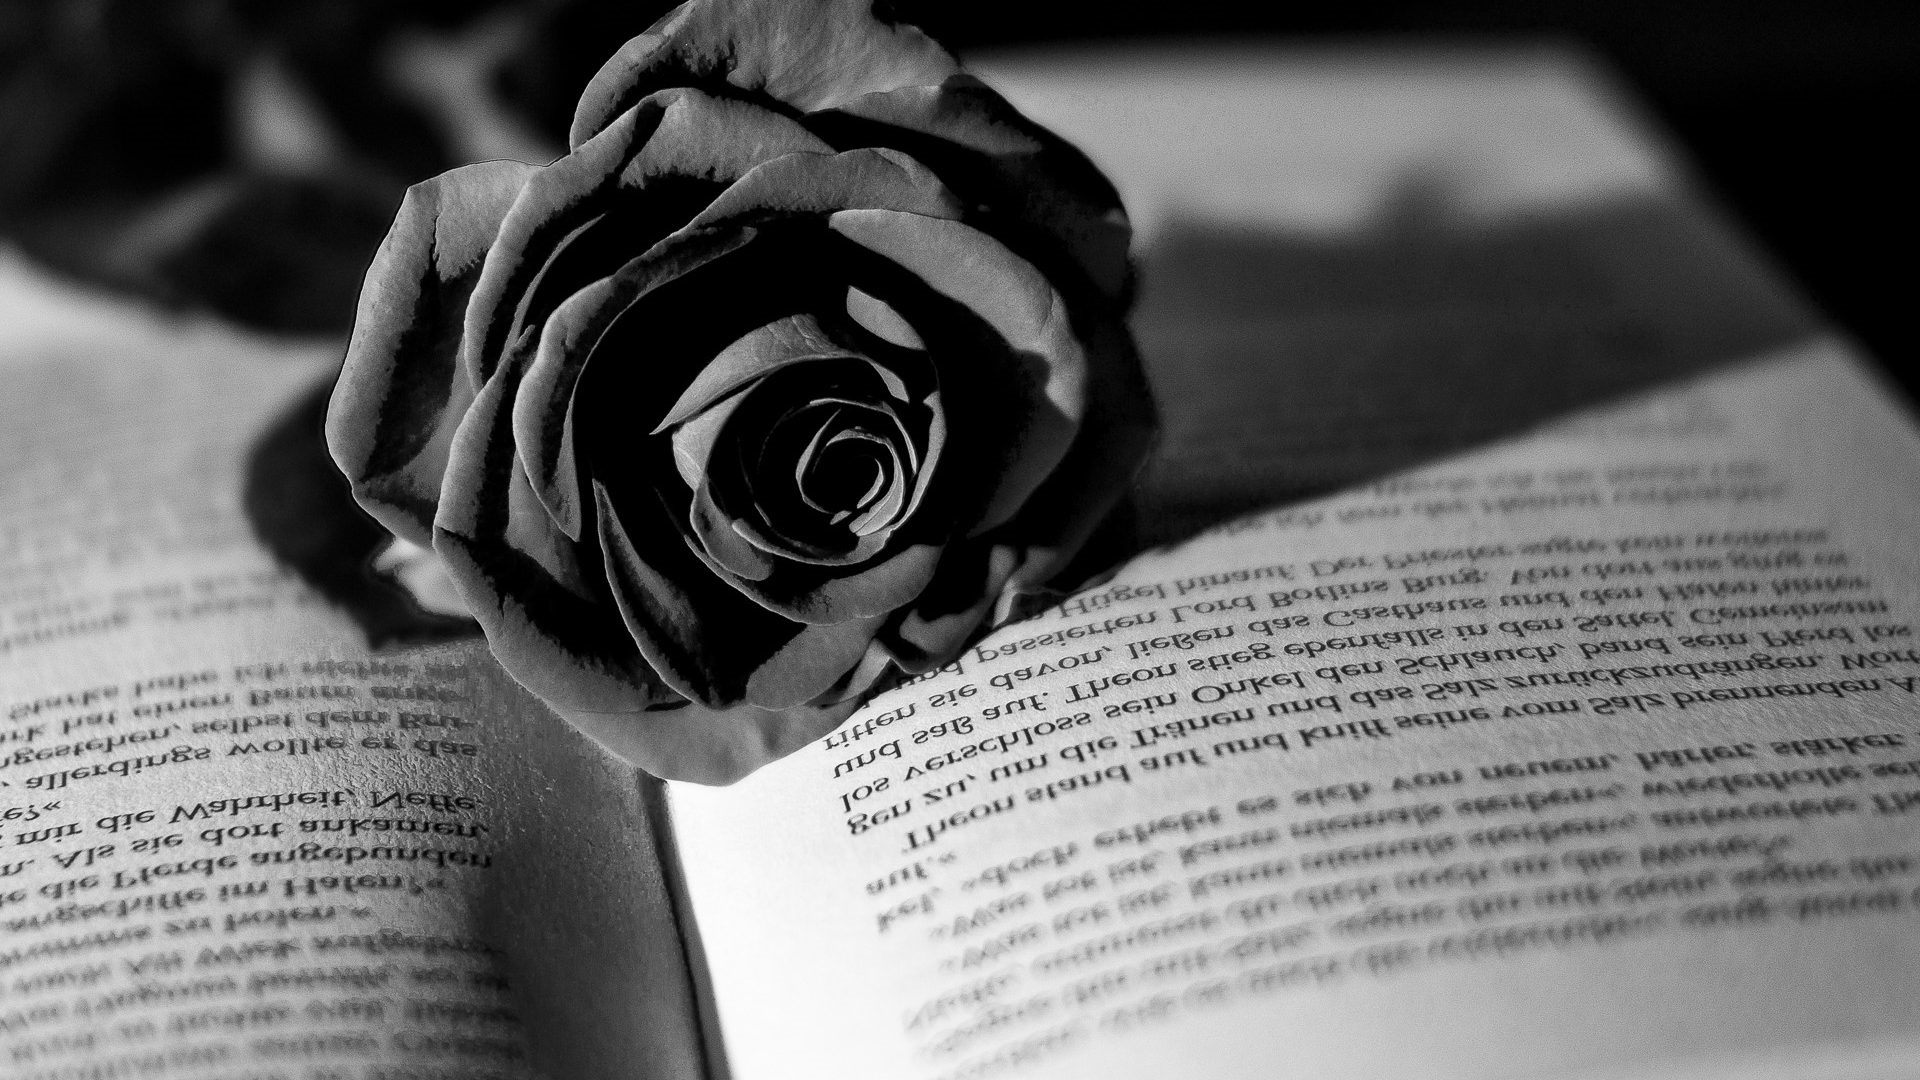 Flowers White Book Black Rose Flower Wallpaper Hd Full Floribunda 100127 Hd Wallpaper Backgrounds Download